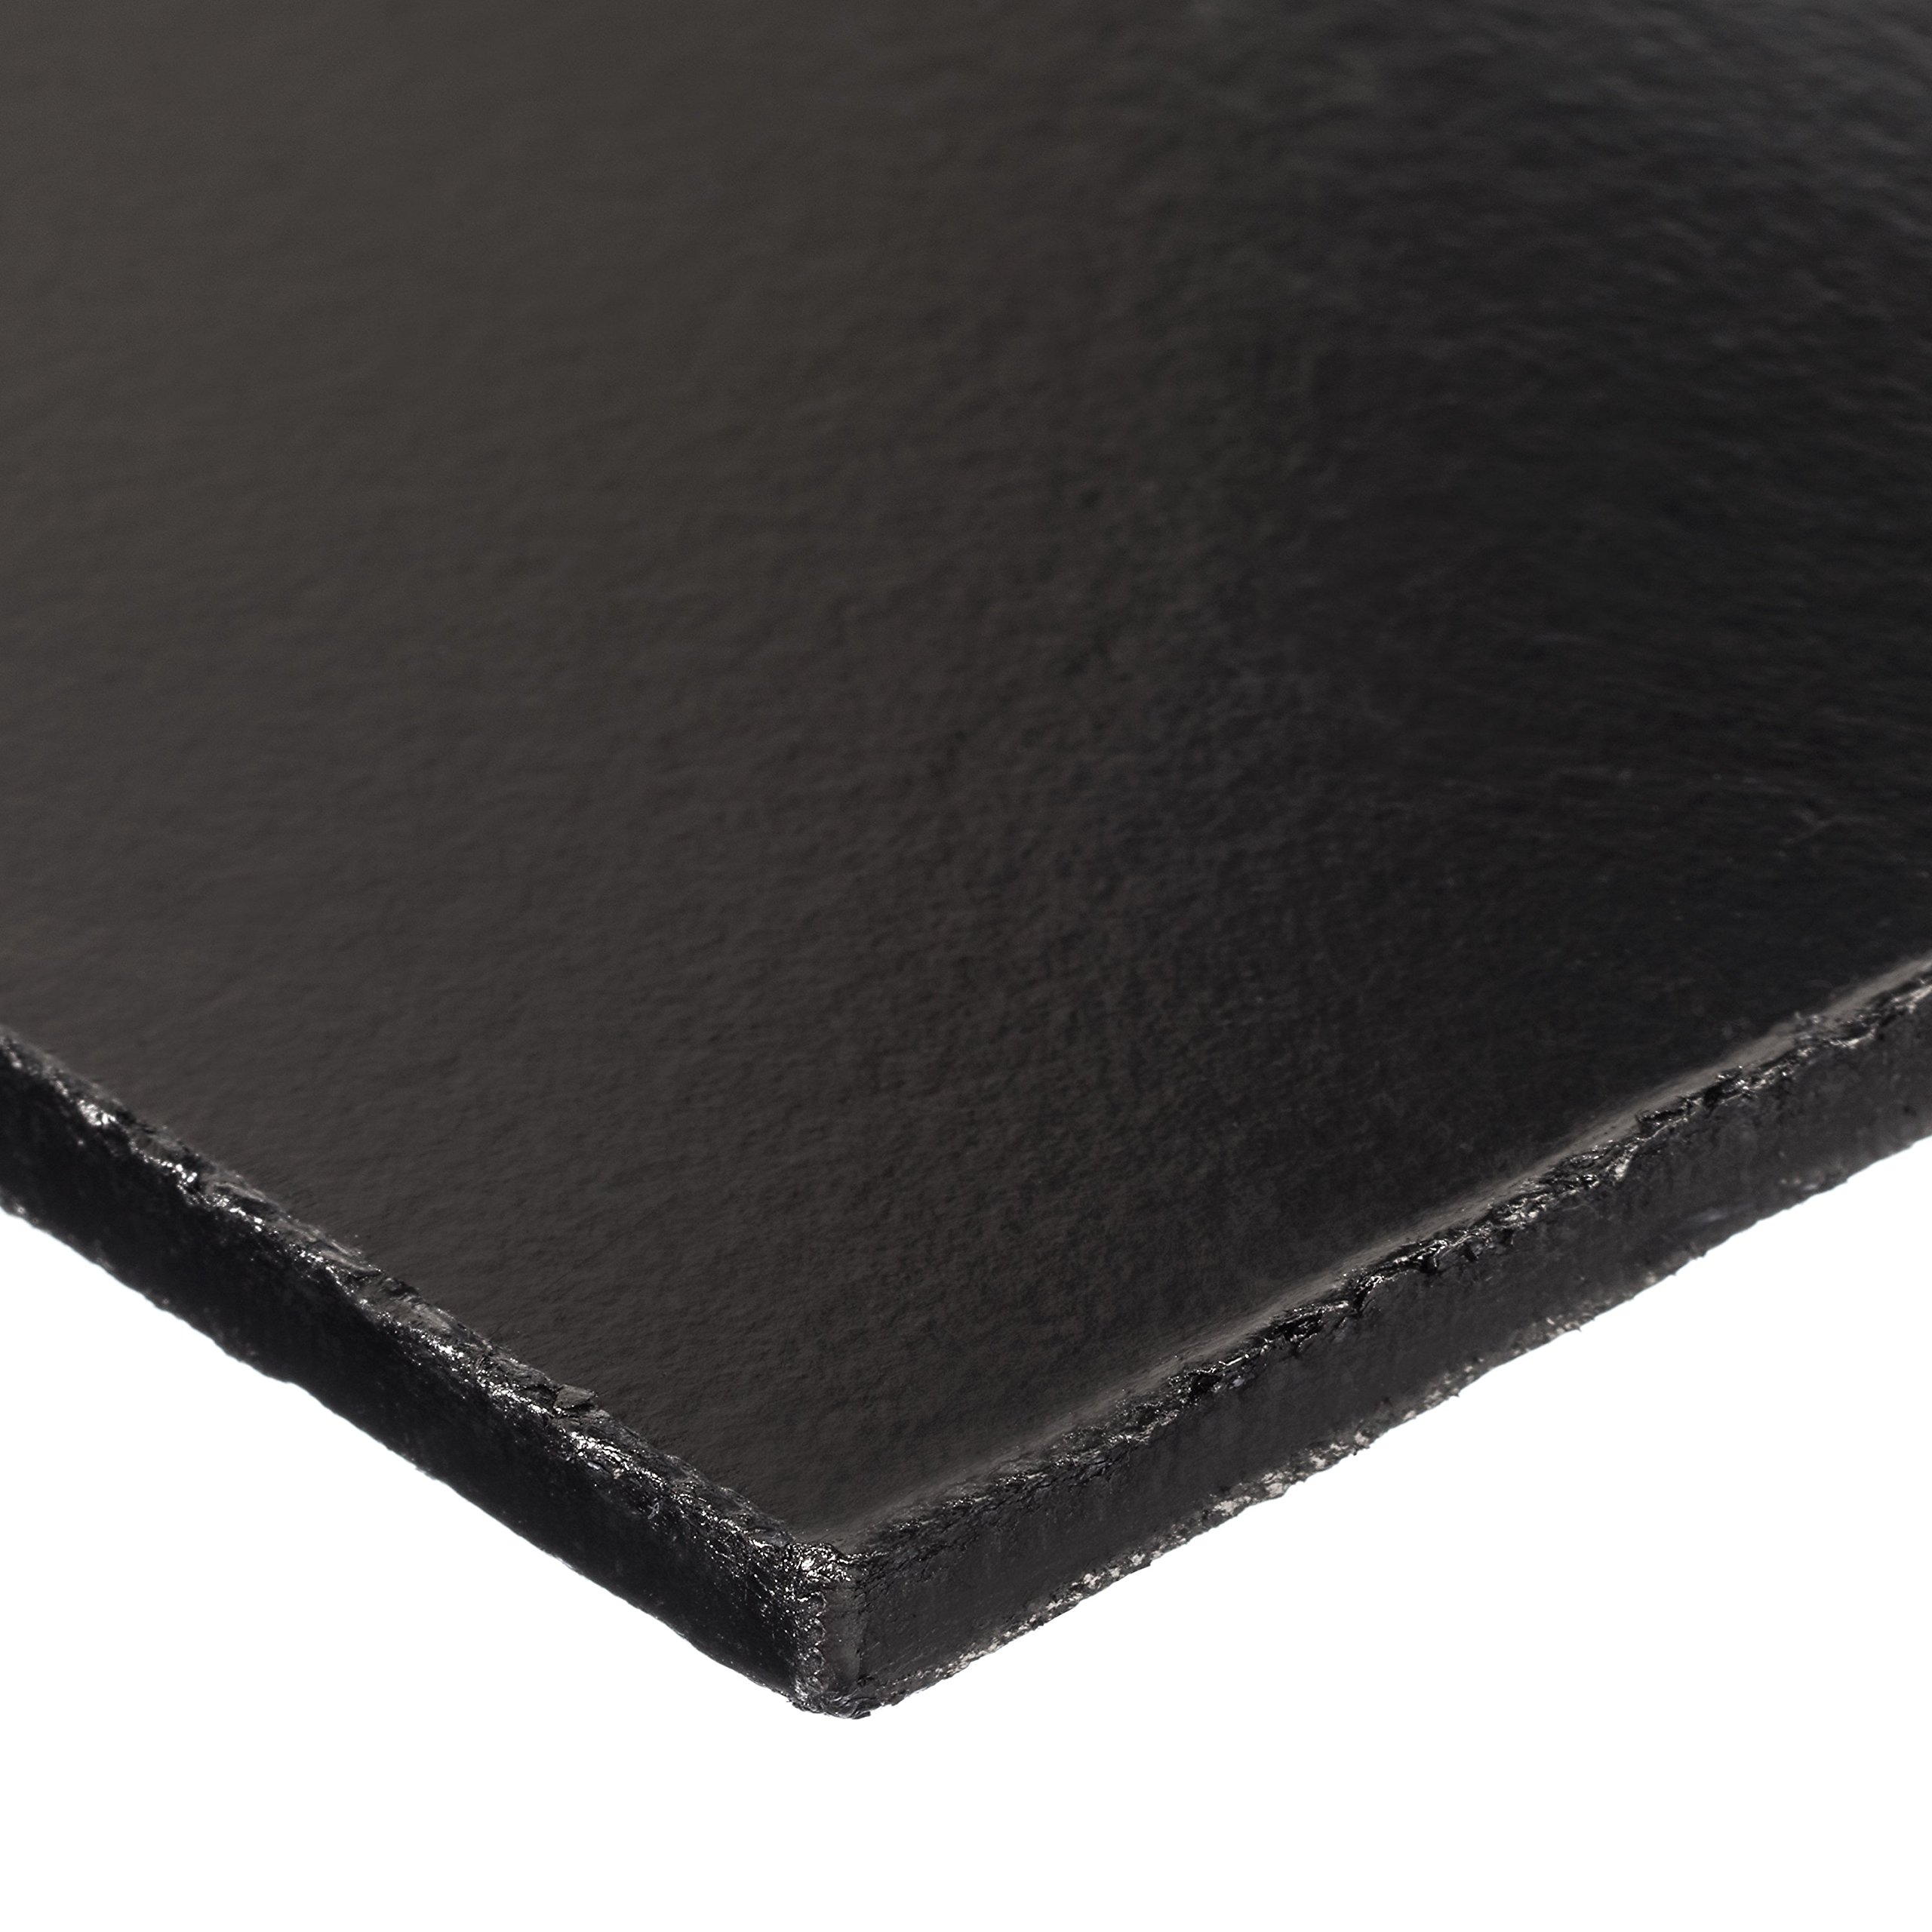 USA Sealing Compressible Graphite Sheet - 1/16'' Thick x 36'' Wide x 36'' Long by USA Sealing